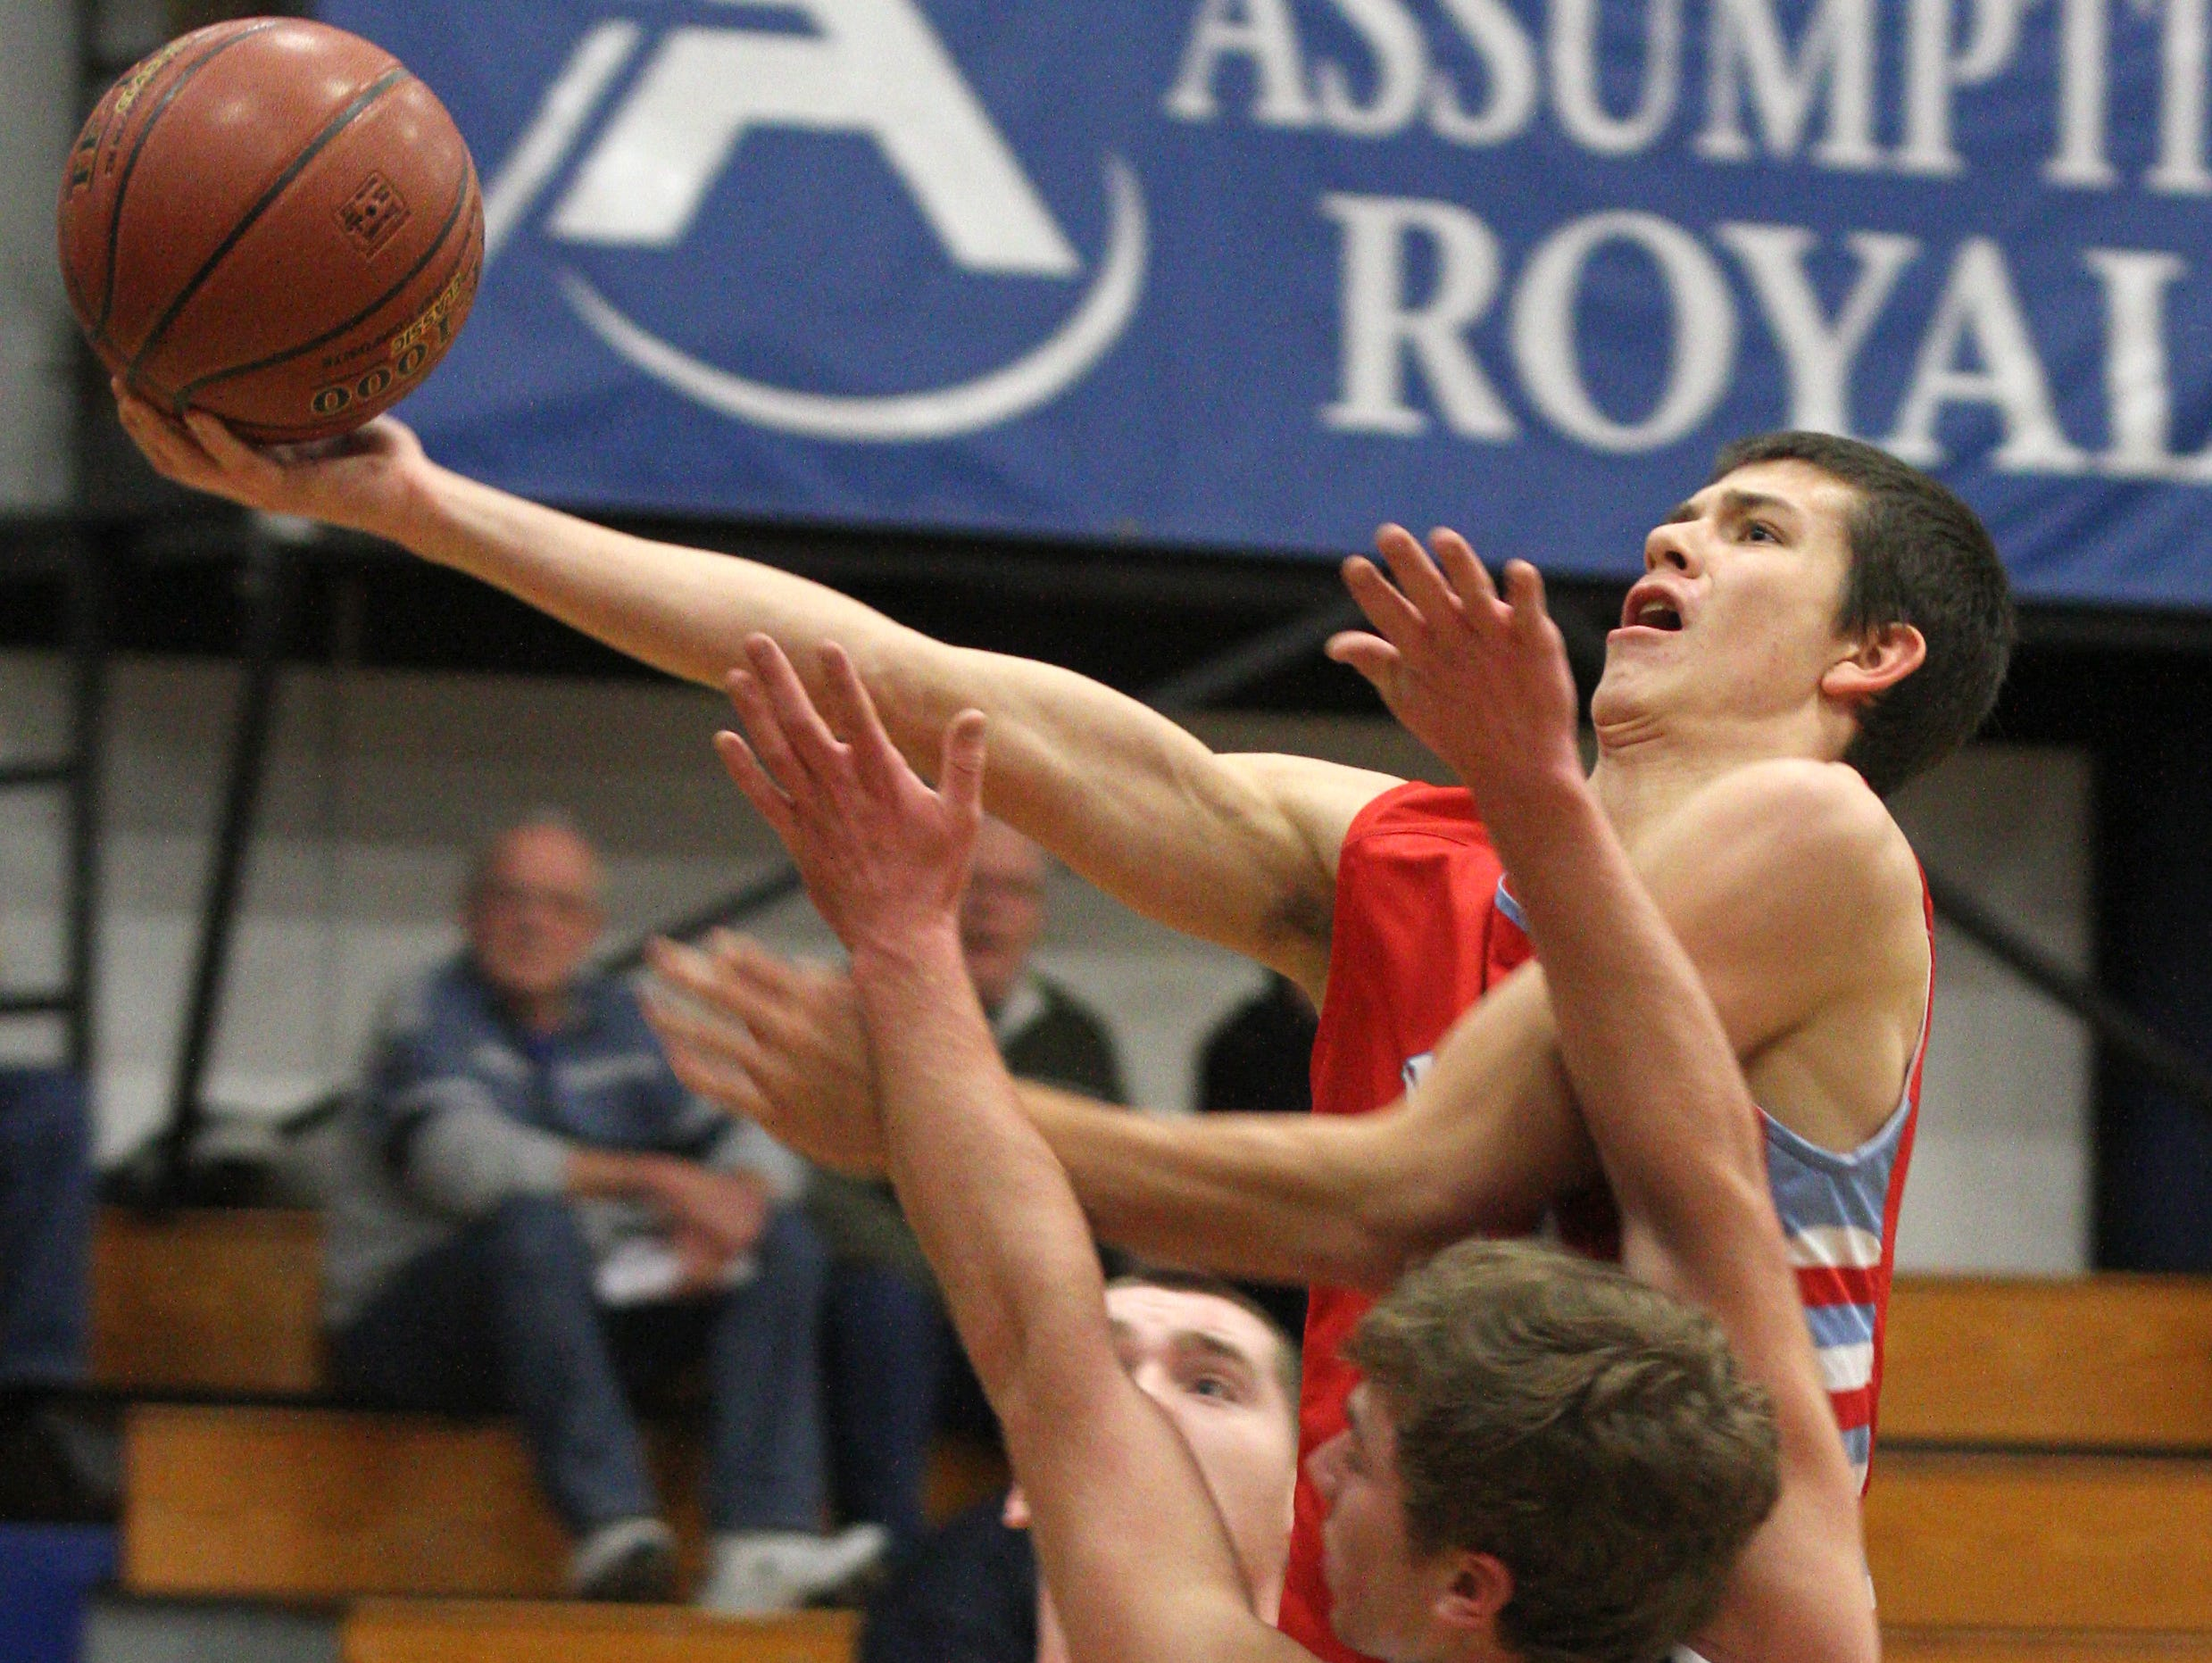 Wausau Newman junior forward Jake Gajewski gets a one handed shot off while Brady Baltus of Assumption defends in the game against Assumption held in Wisconsin Rapids Tuesday night.